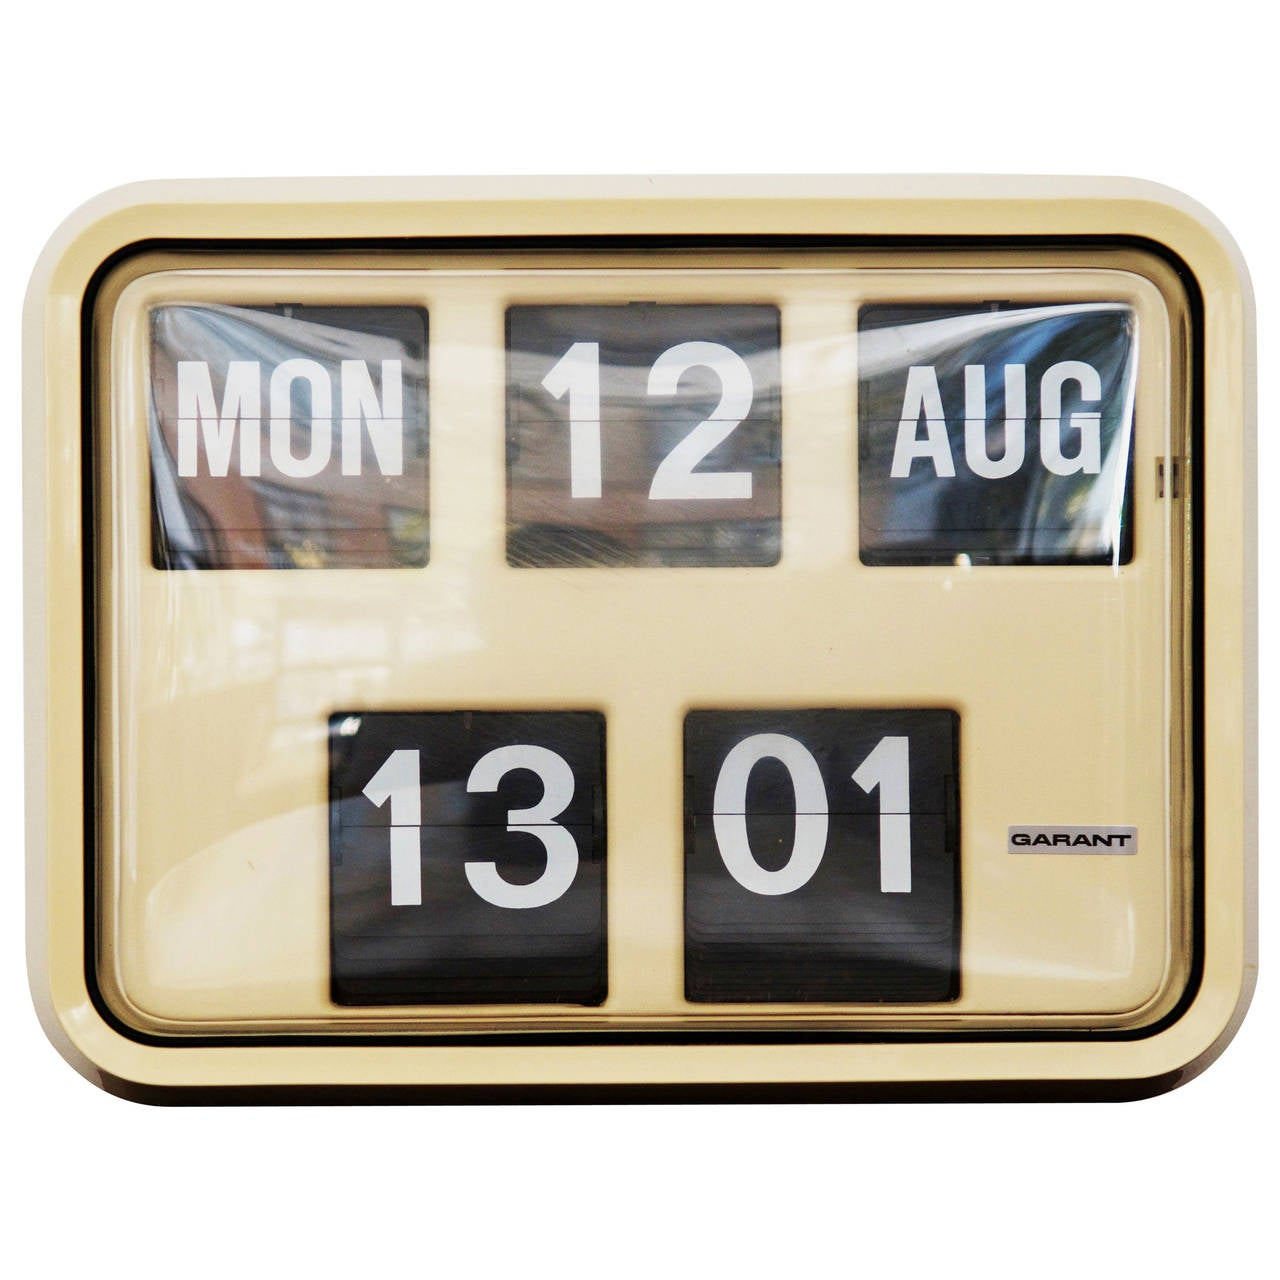 Big Flip Clock Flip Clock By Garand From 1970s At 1stdibs